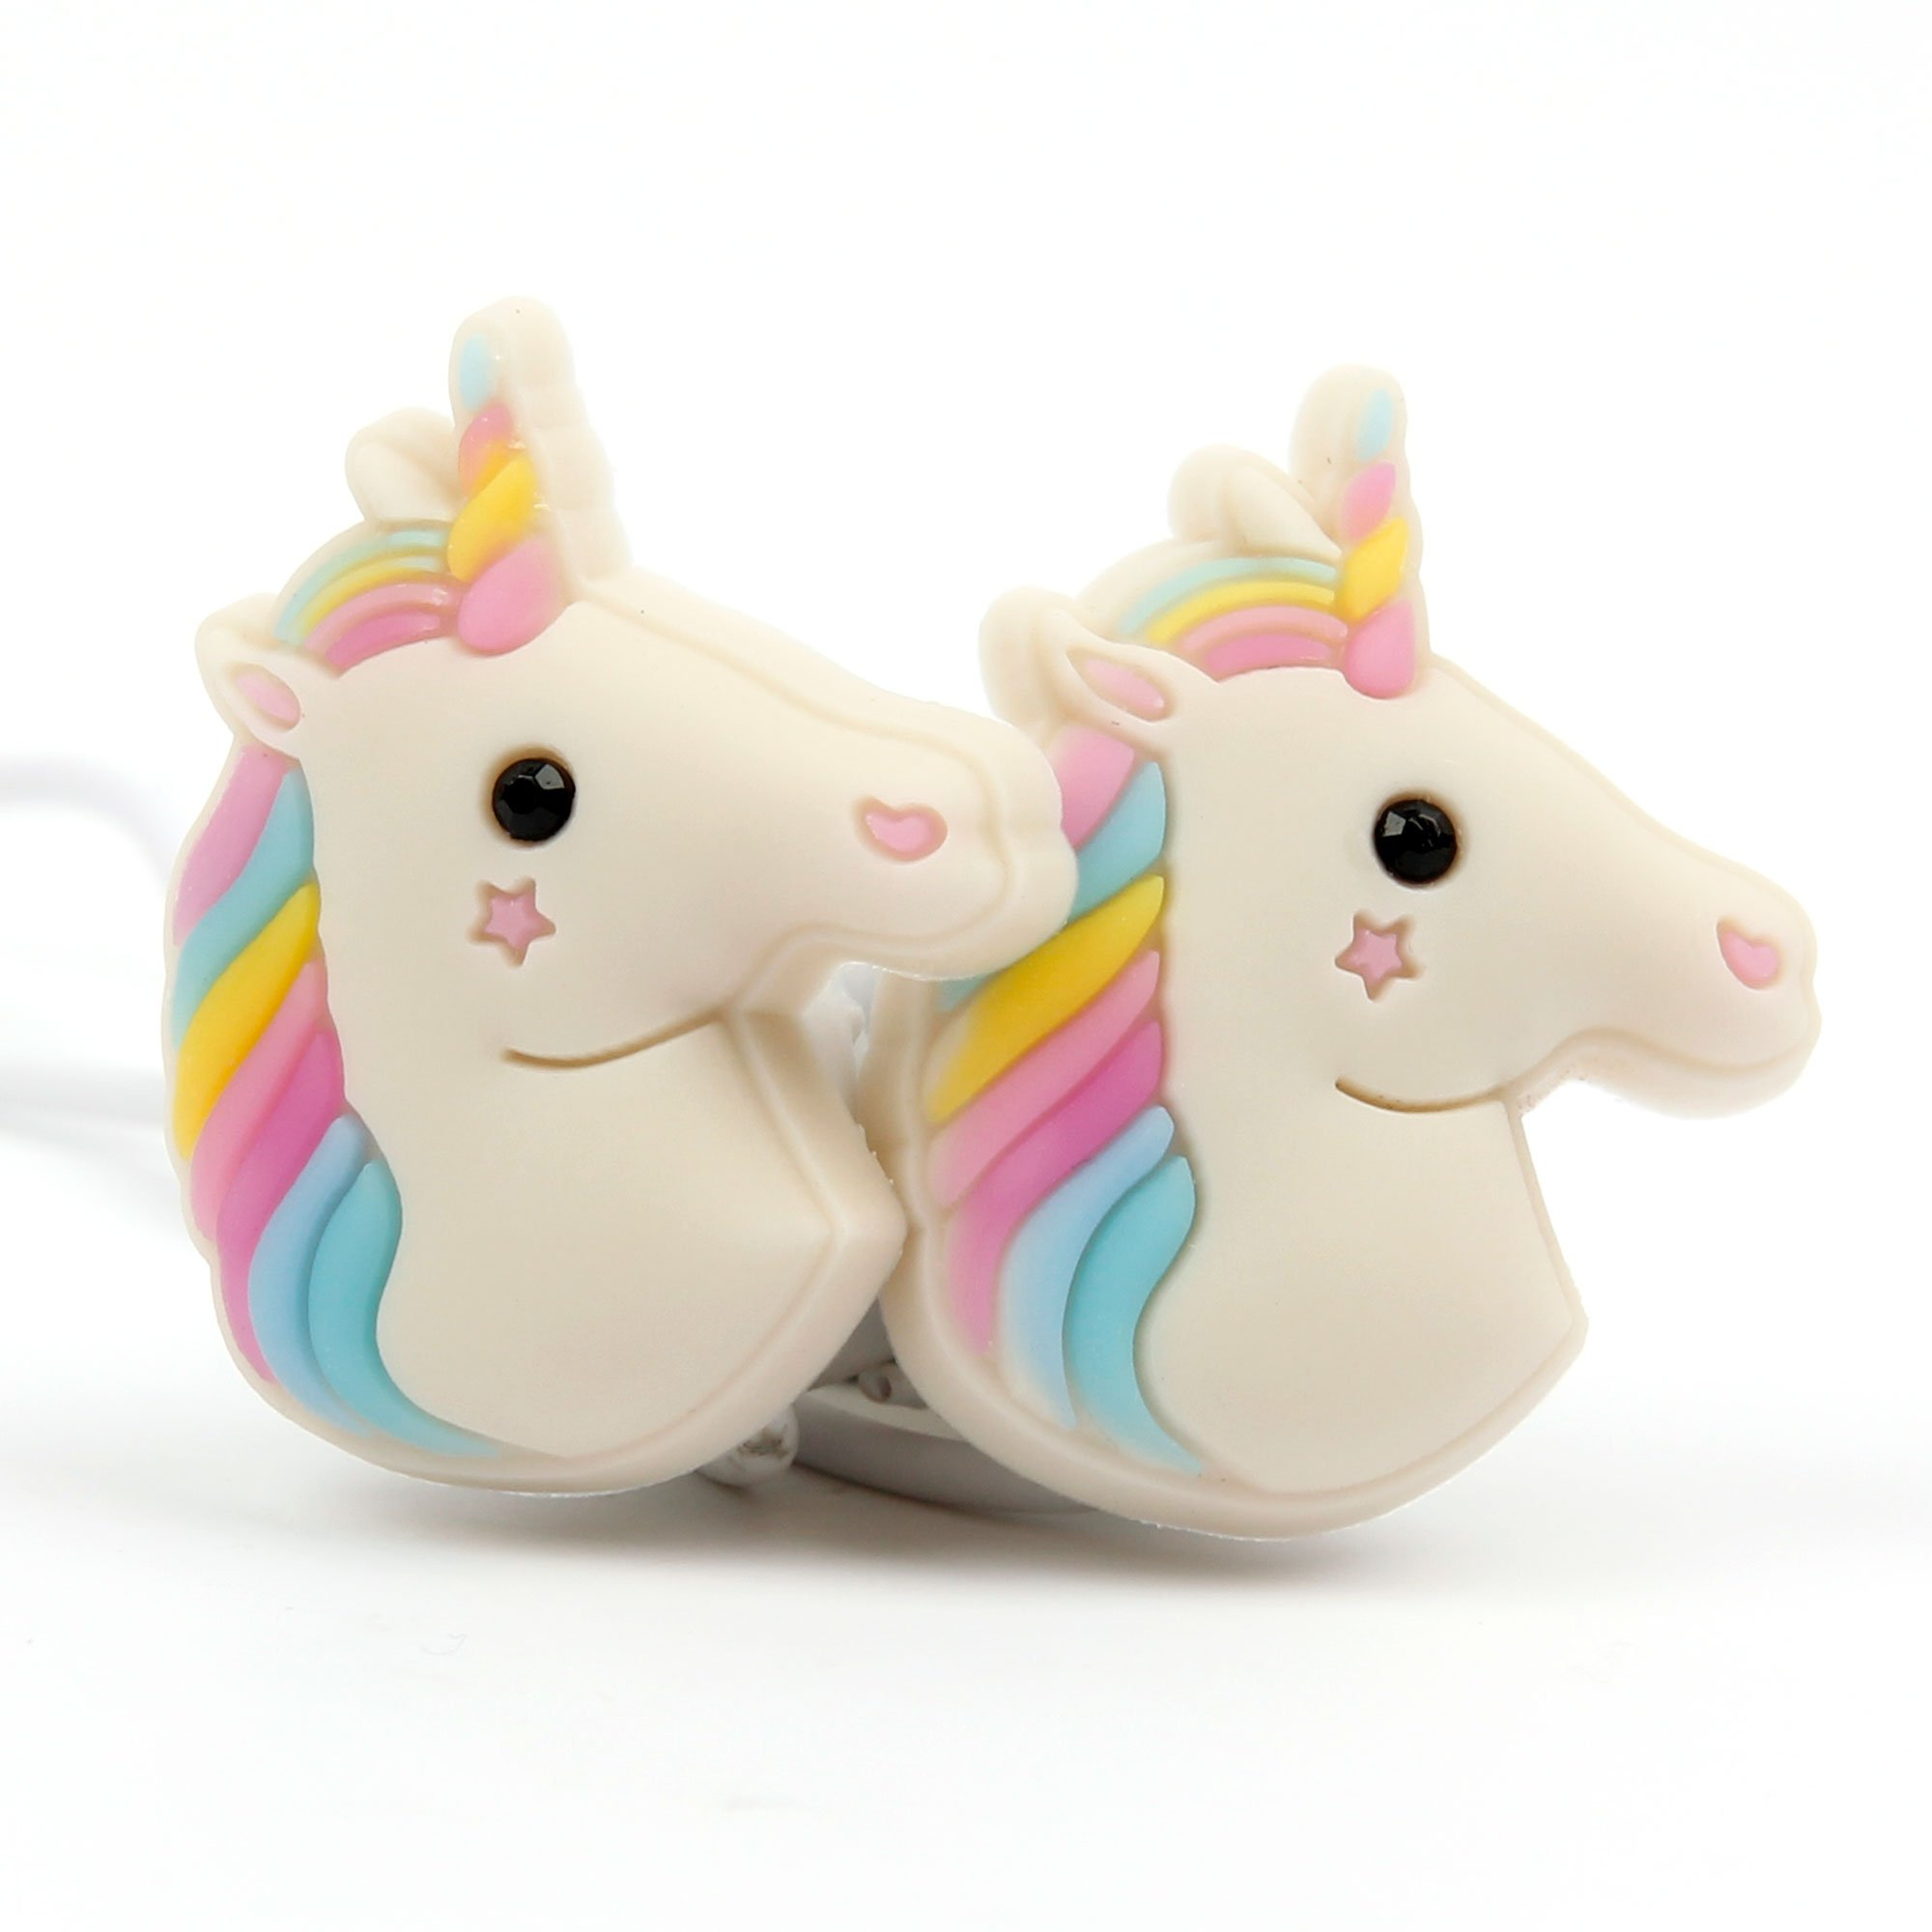 DURAGADGET Cute in-Ear 3D Cartoon Emoji Rainbow Unicorn Earphone Headphones - Compatible with Roland R26 Portable/Edirol Roland R-05 Portable Digital Voice Recorders